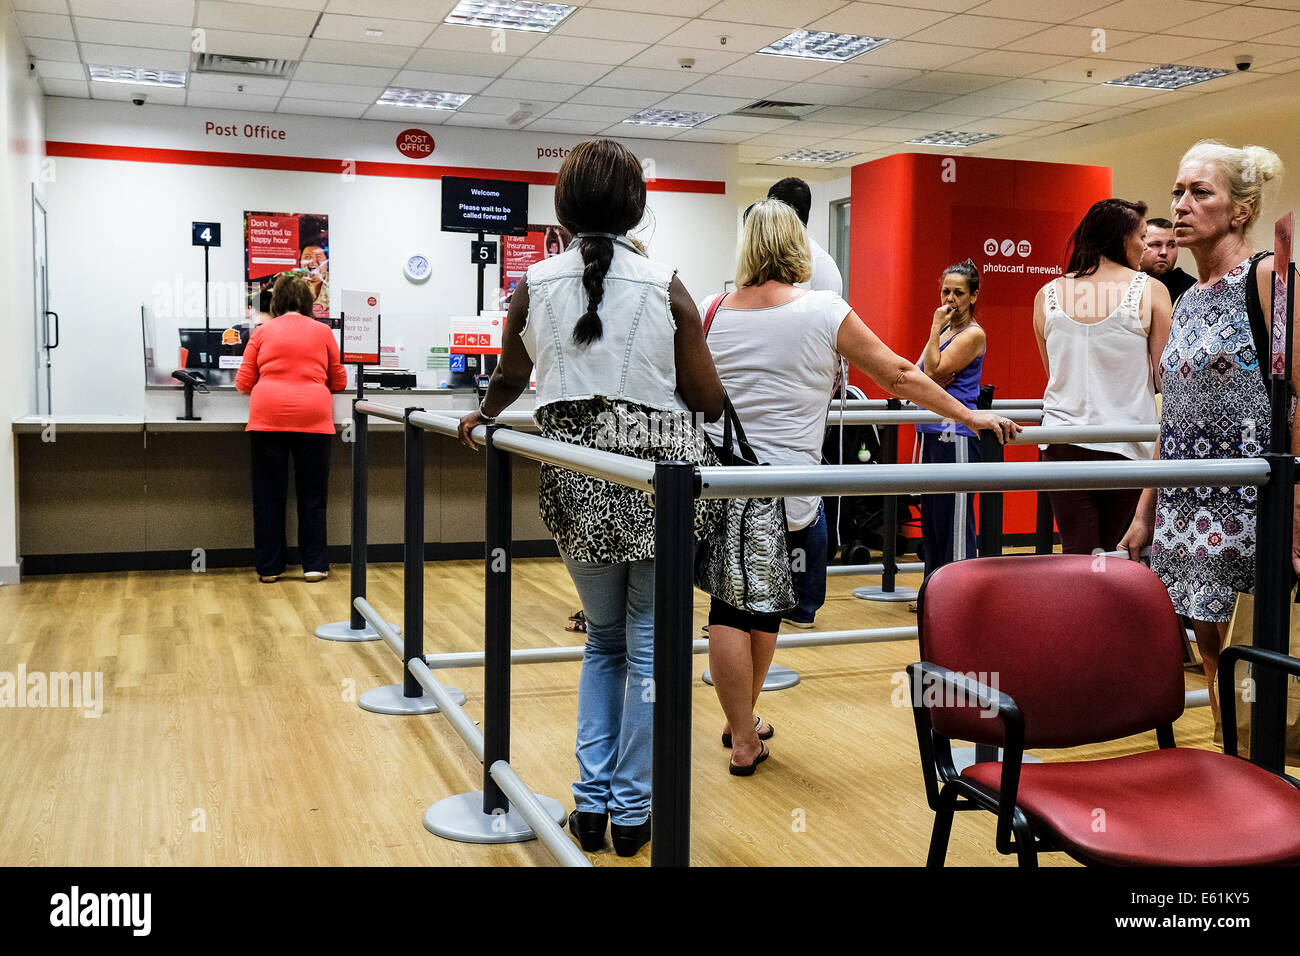 Patient customers queueing in a post office. Stock Photo